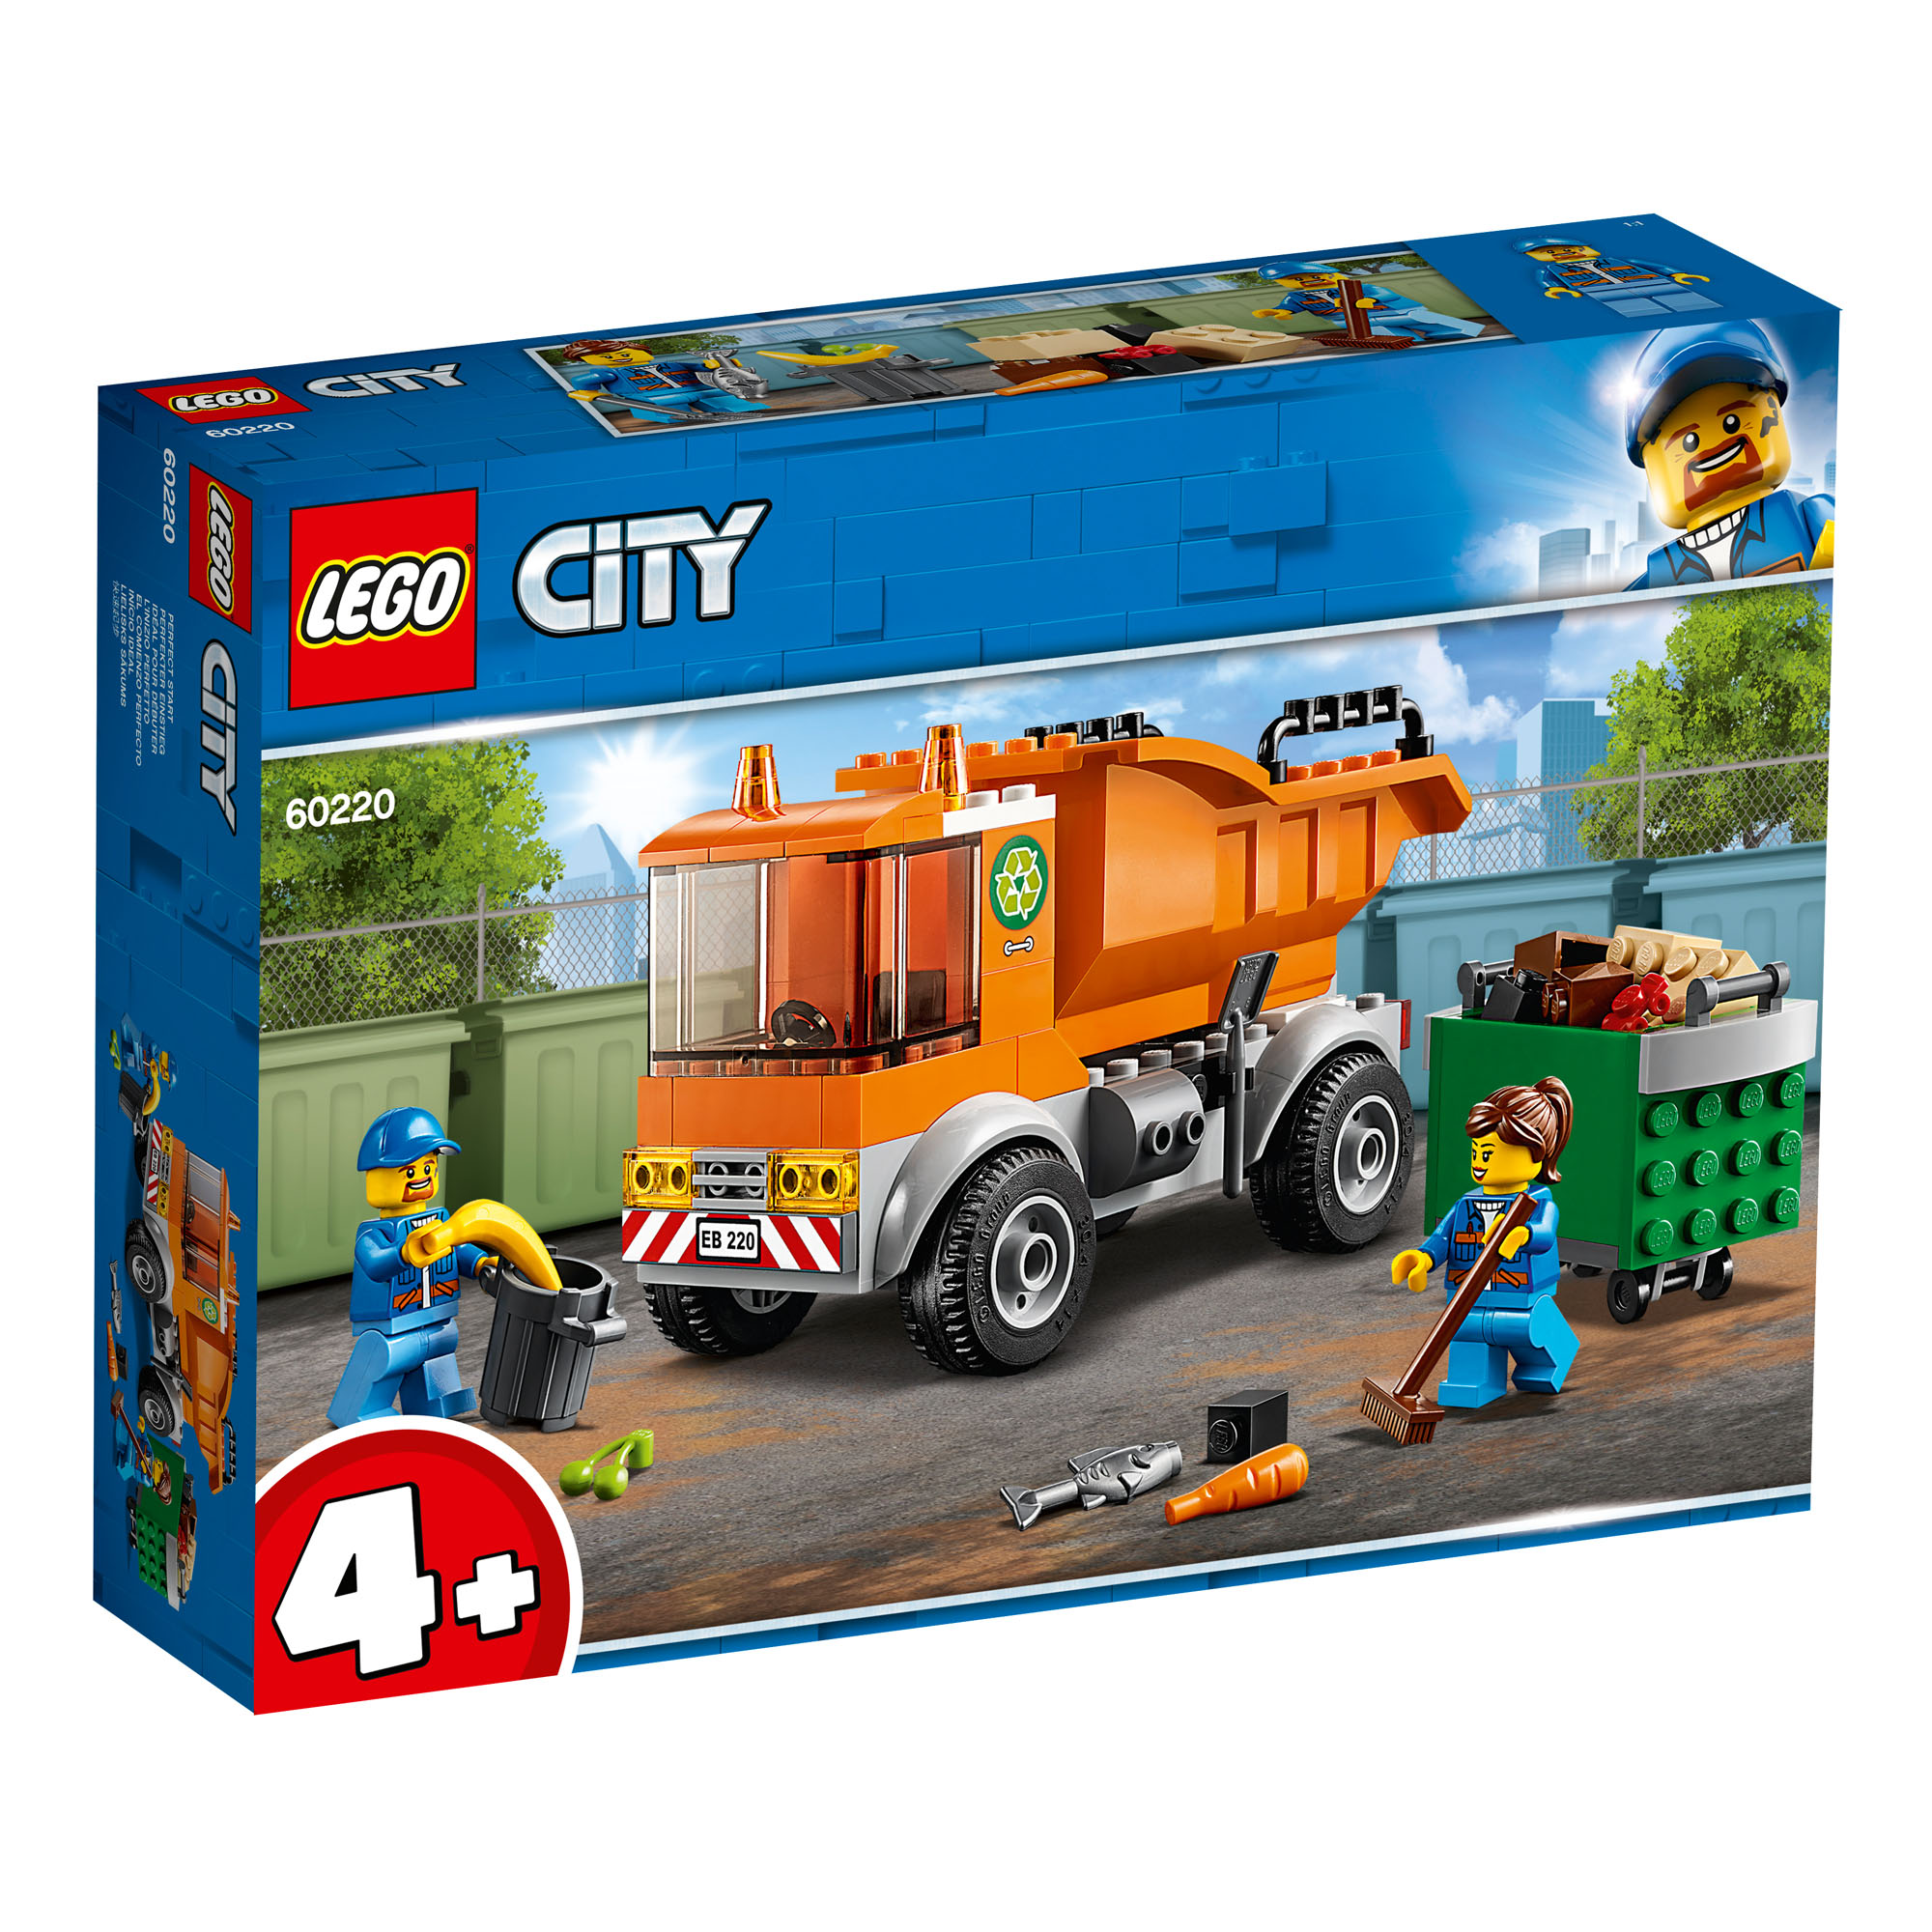 60220 LEGO CITY Garbage Truck 90 Pieces Age 4 New Release for 2019!